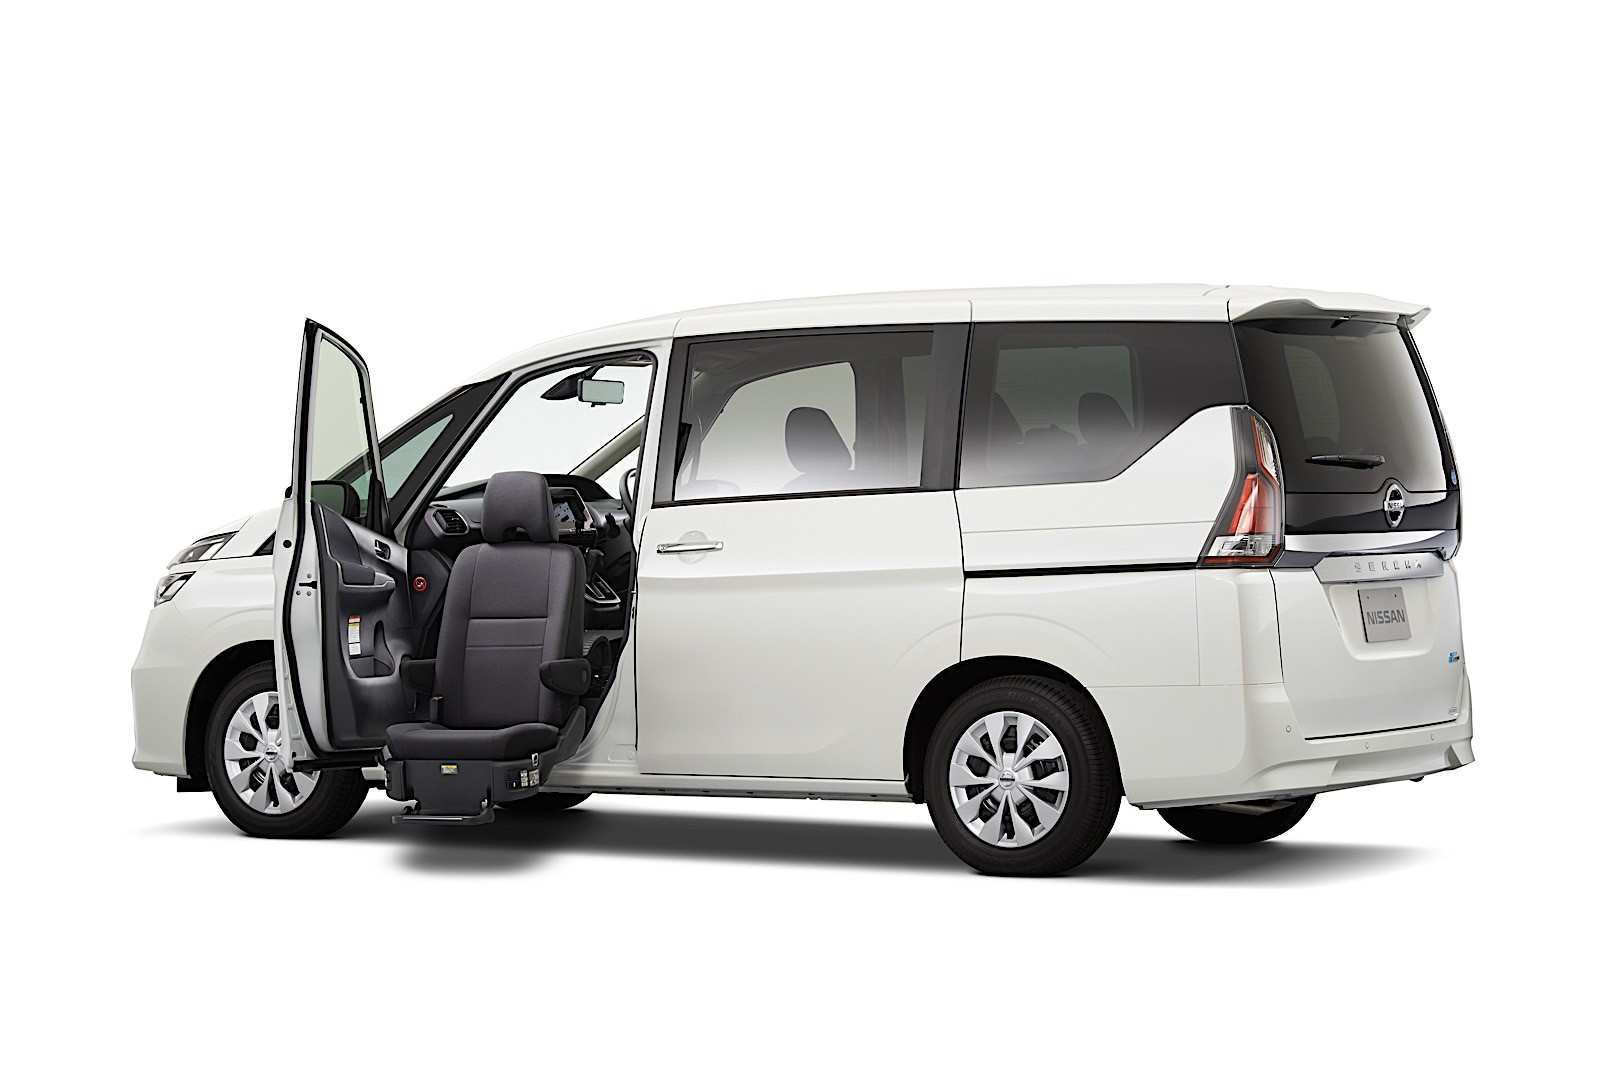 56 All New Nissan Serena 2019 Price with Nissan Serena 2019